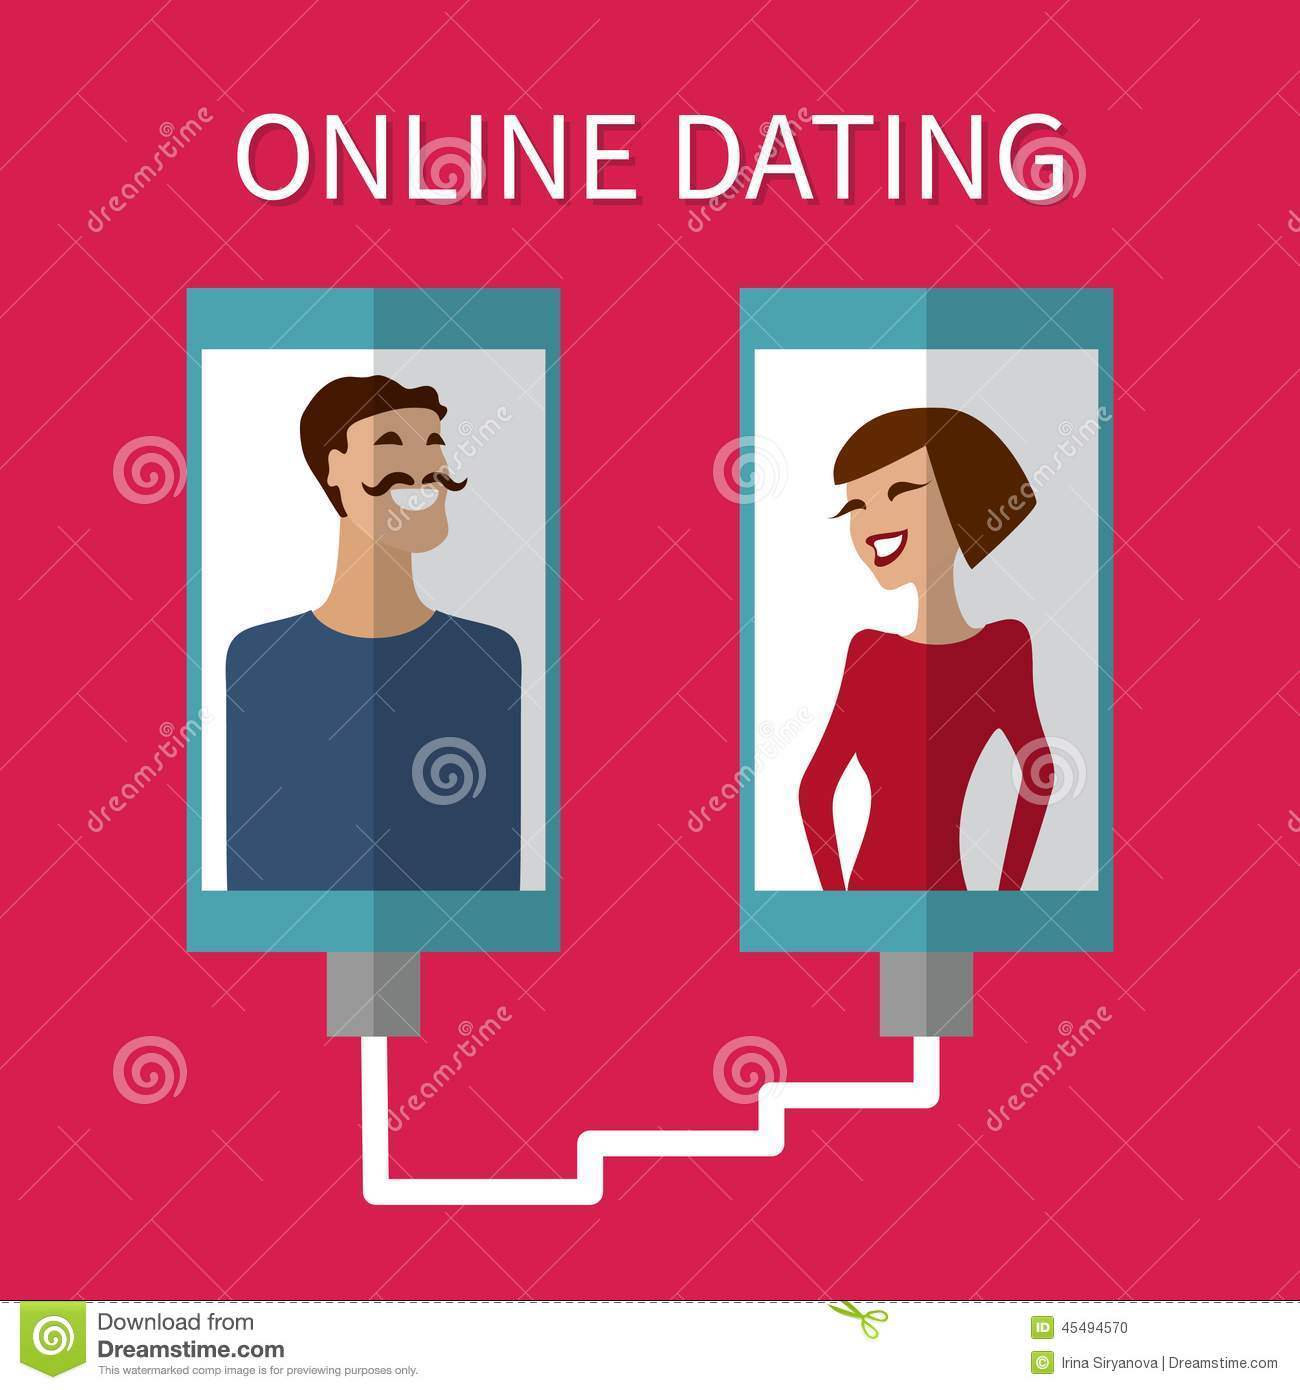 puposky online hookup & dating Hookup on ihookup connect with like-minded singles & couples from around the world, or around the corner join for free it's quick, easy and anonymous.